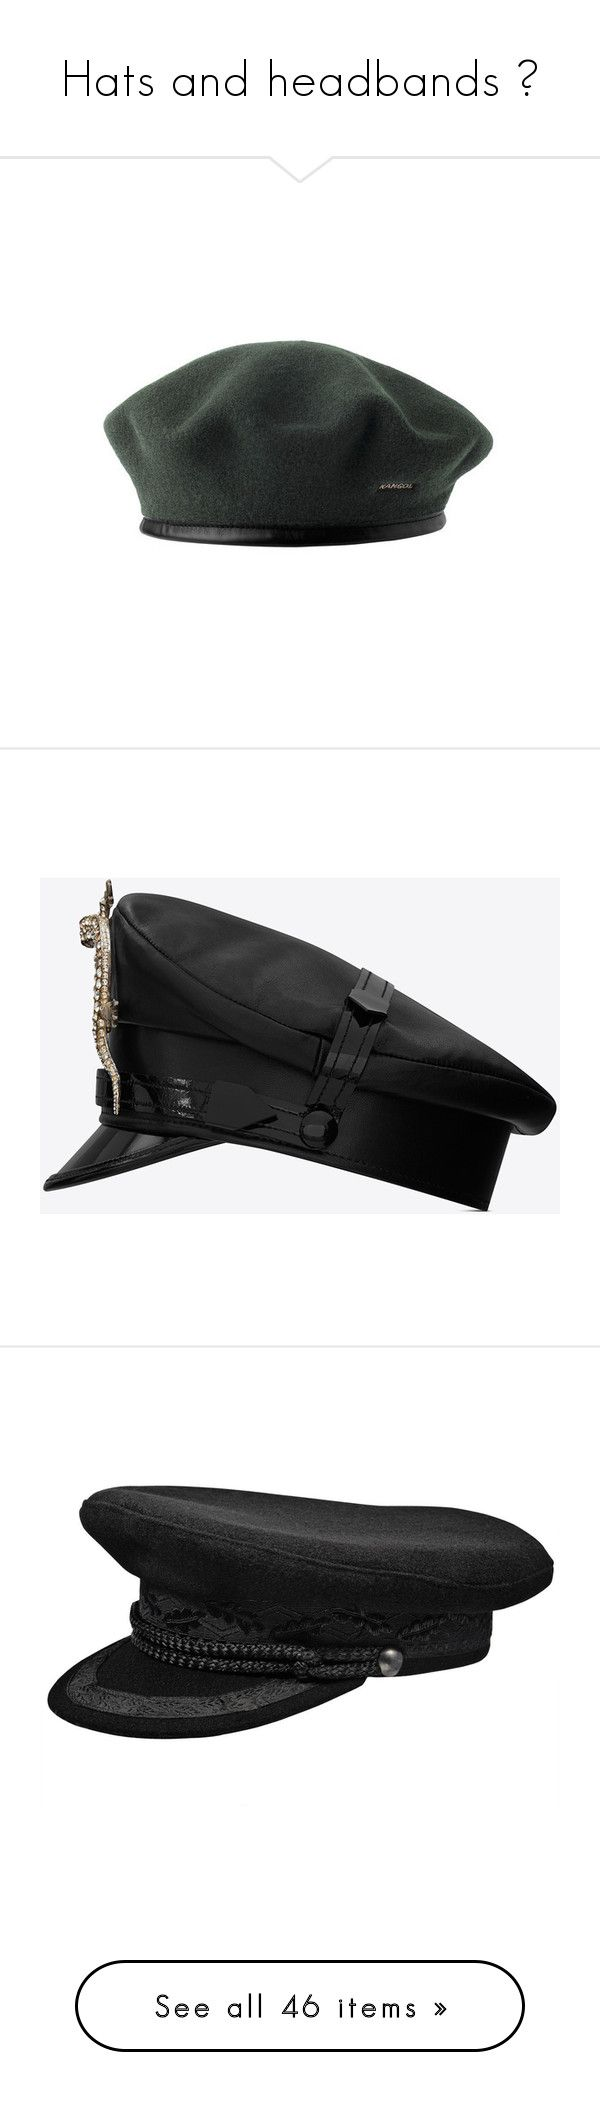 """""""Hats and headbands 👒"""" by alynch167 ❤ liked on Polyvore featuring accessories, hats, military hats, kangol beret, kangol, kangol hats, wool beret, cap hats, leather cap hat and leather brim hat"""